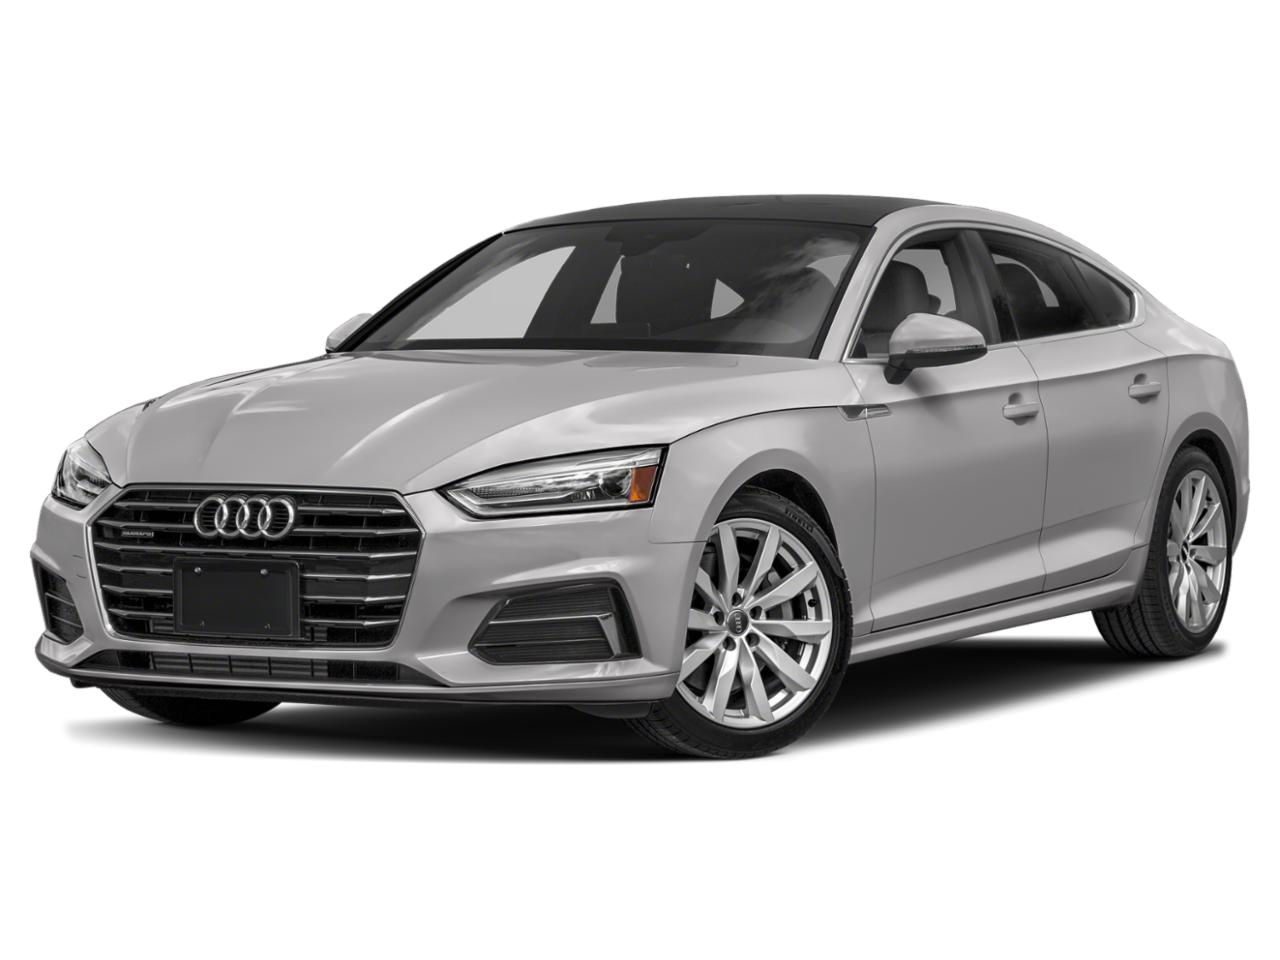 2019 Audi A5 Sportback Vehicle Photo in Allentown, PA 18103